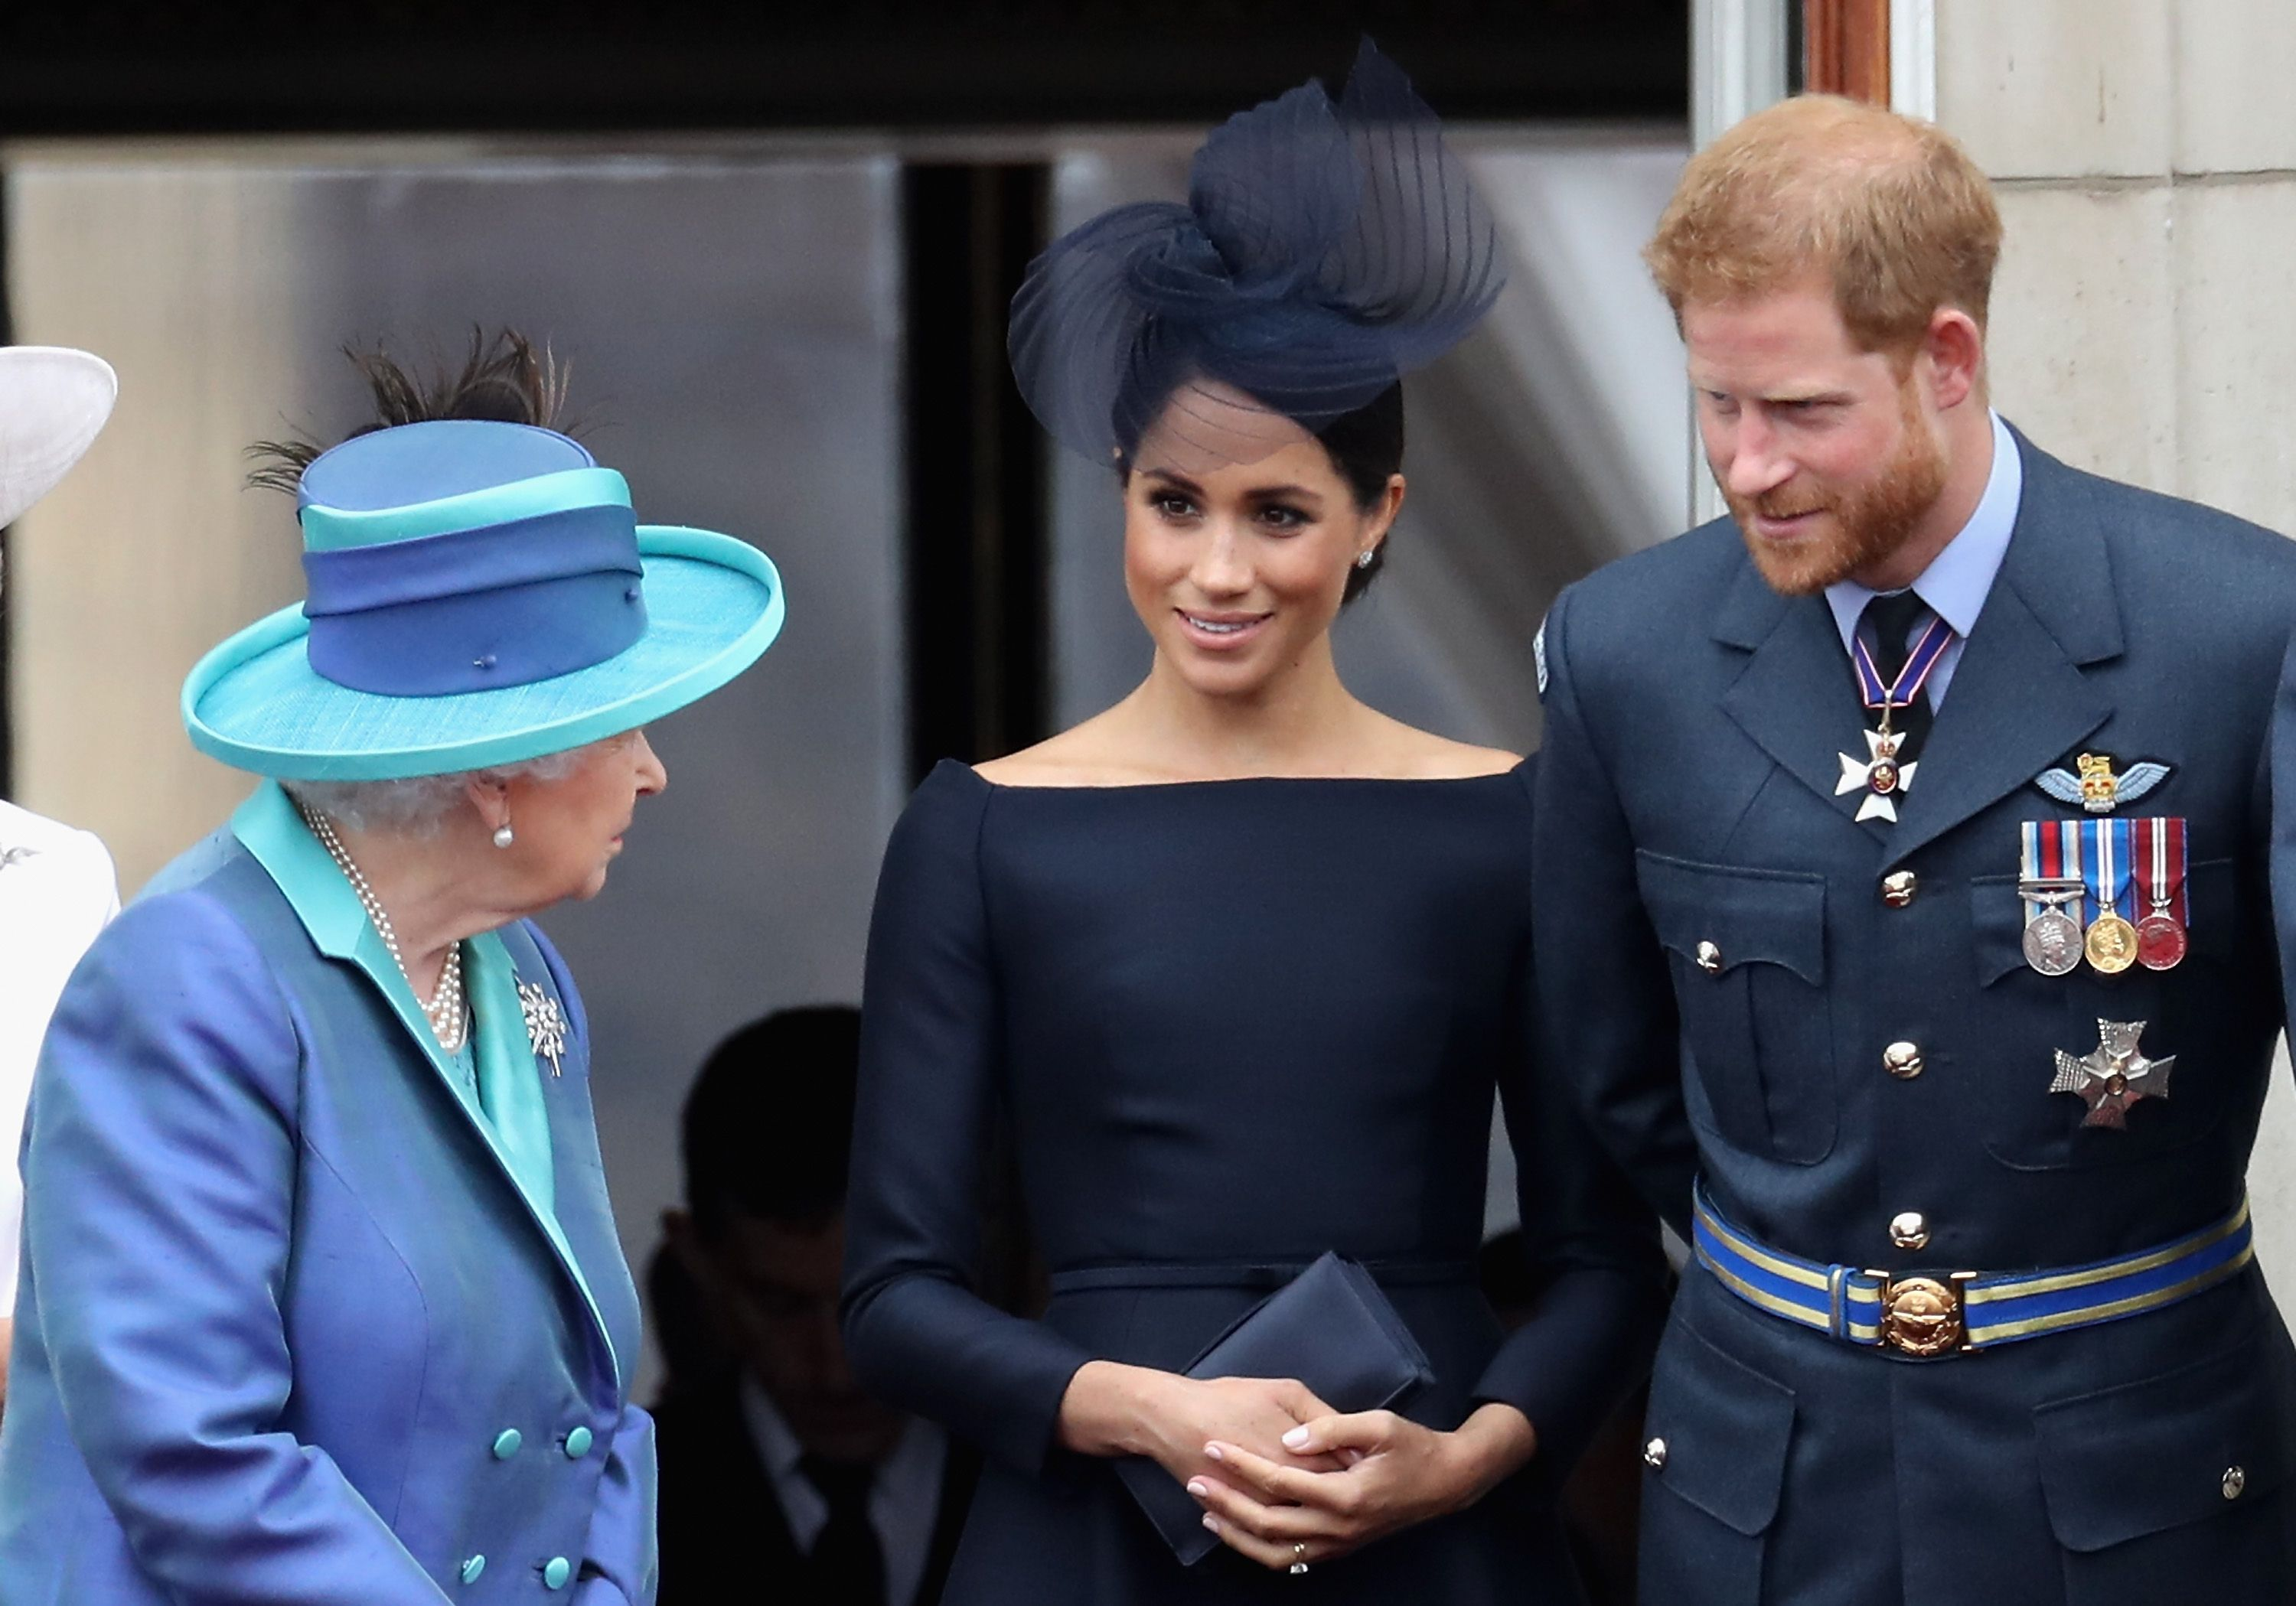 Prince Harry Reportedly Tried to Meet With the Queen, but Was Blocked by Courtiers